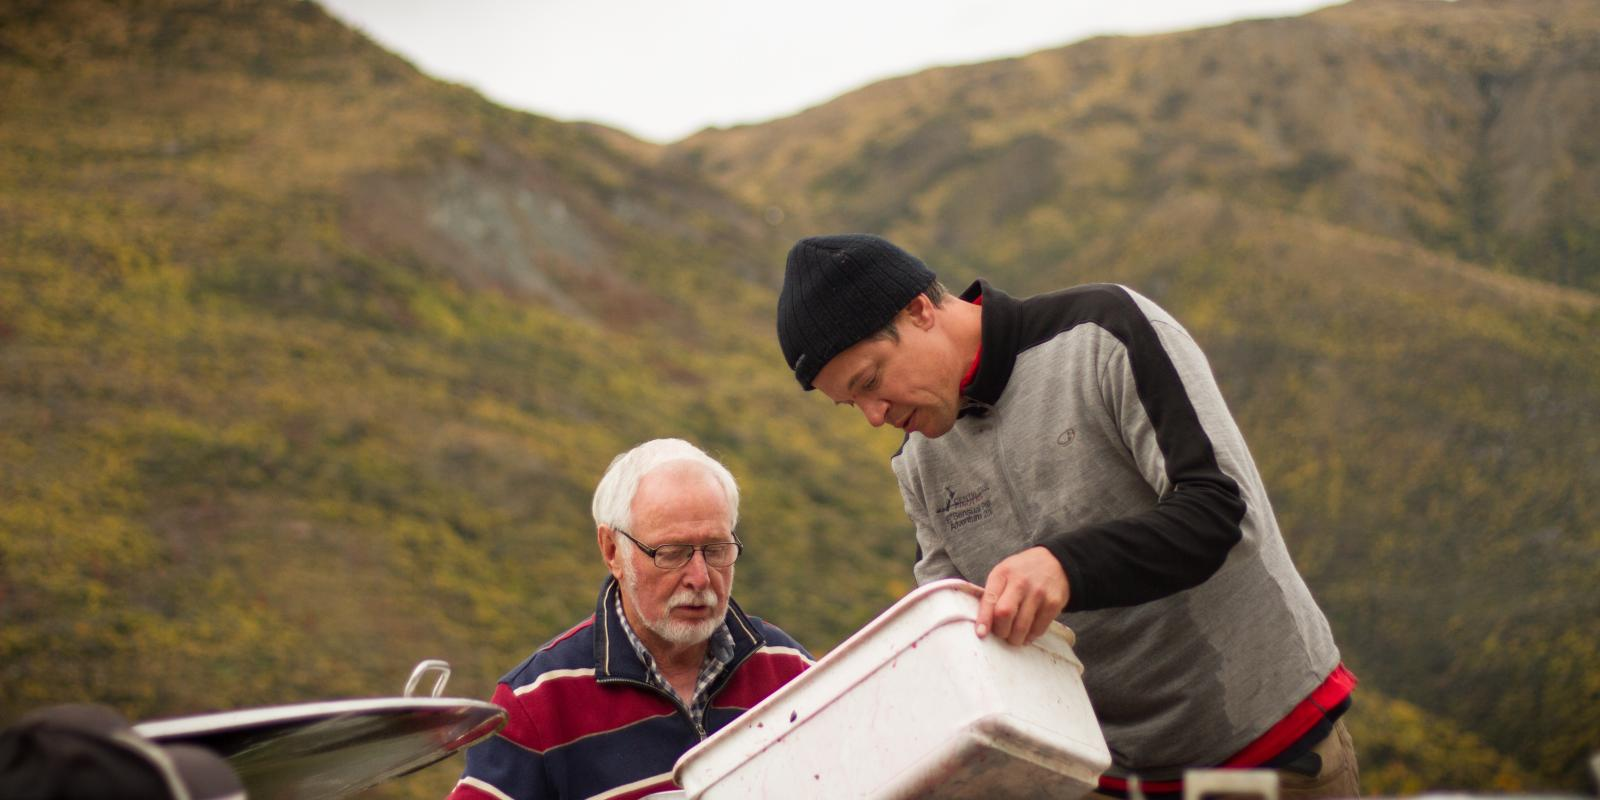 Alan Brady in Queenstown wine harvest